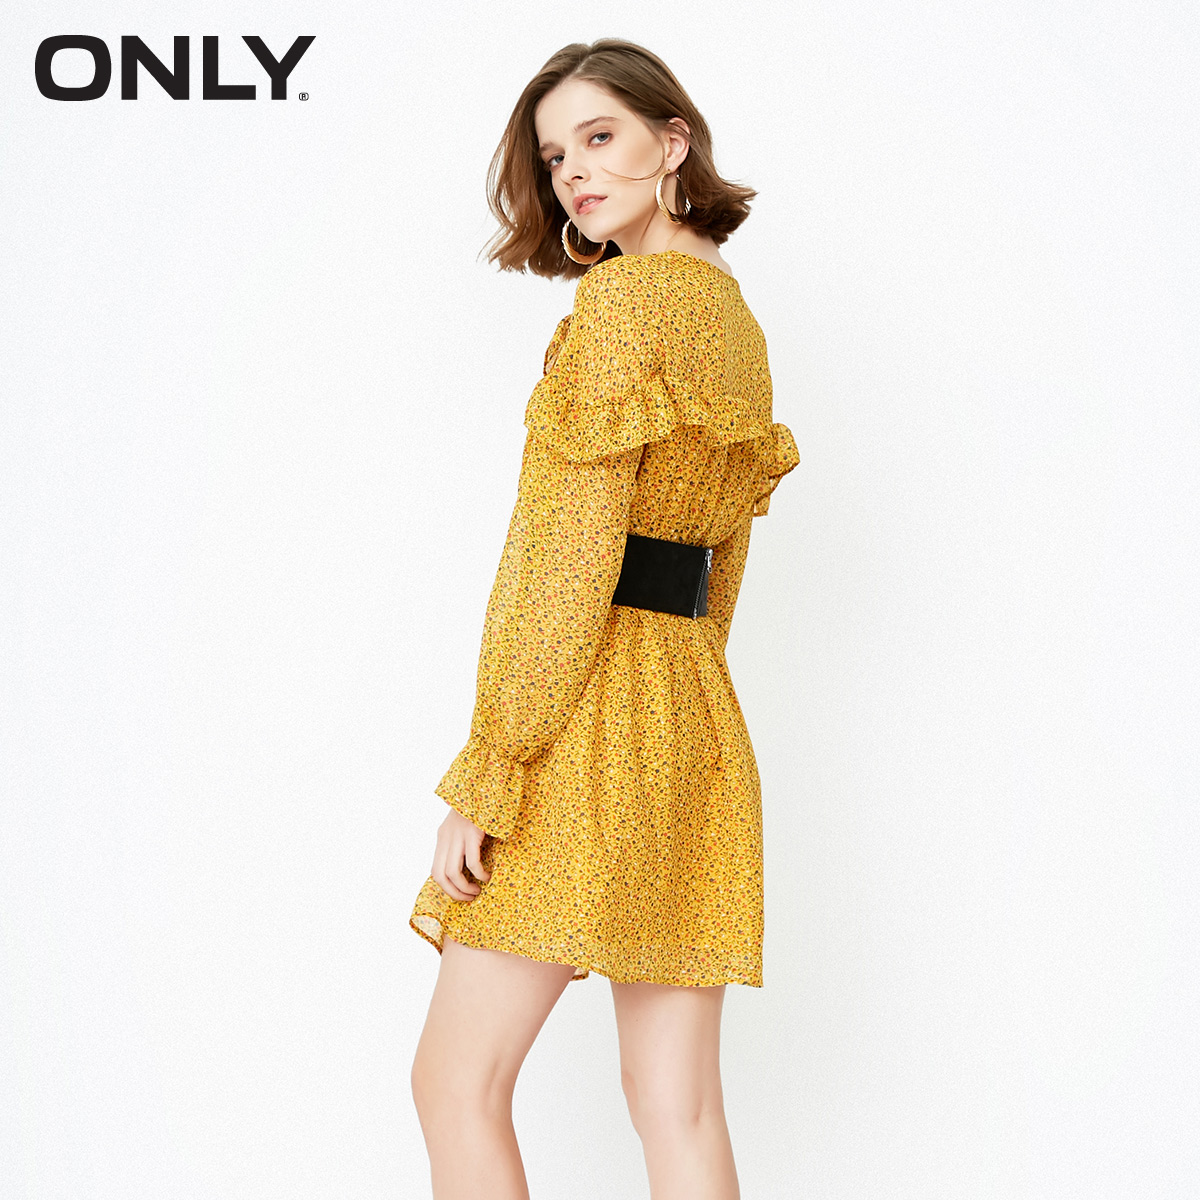 ONLY Brand 2019 Spring Summer Women Dress Fashion Casual Long Sleeve Sweet Floral Chiffon Dress 118107586 in Dresses from Women 39 s Clothing